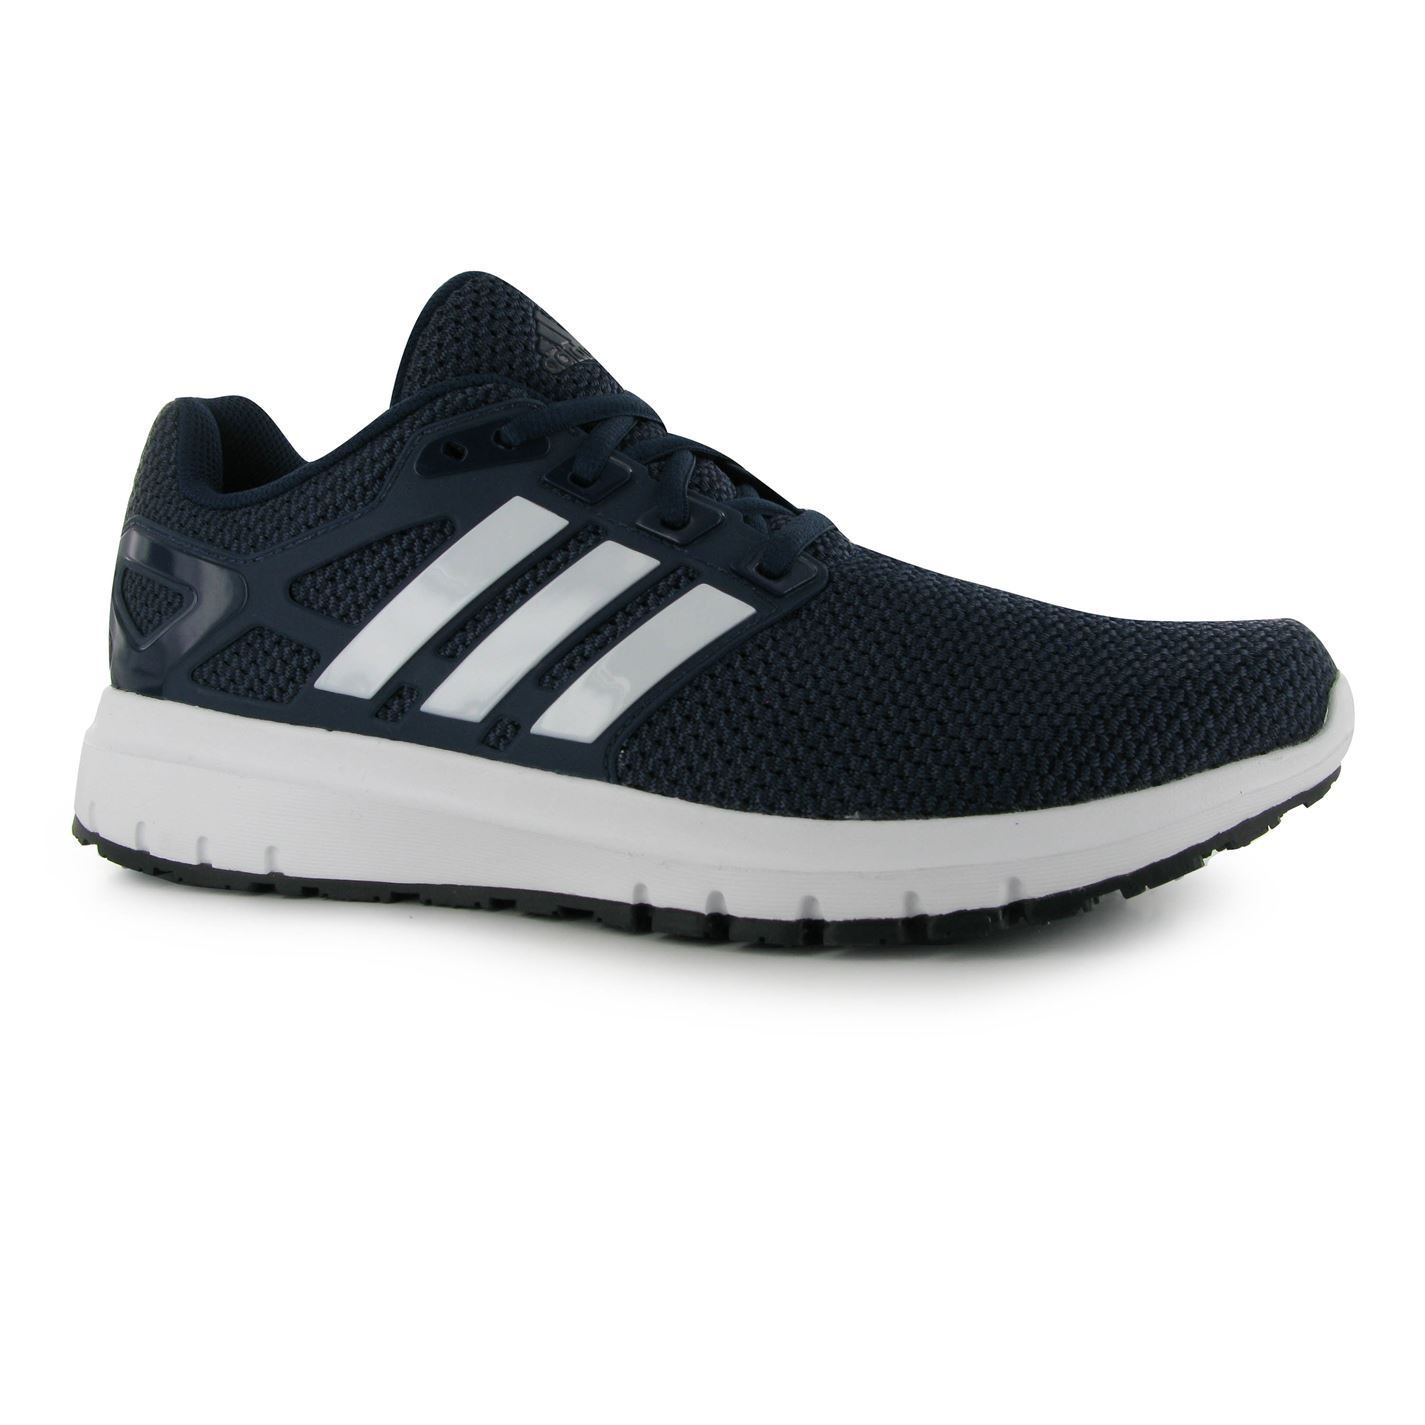 ... Adidas Energy Cloud Running Shoes Mens Navy/White Fitness Trainers  Sneakers ...